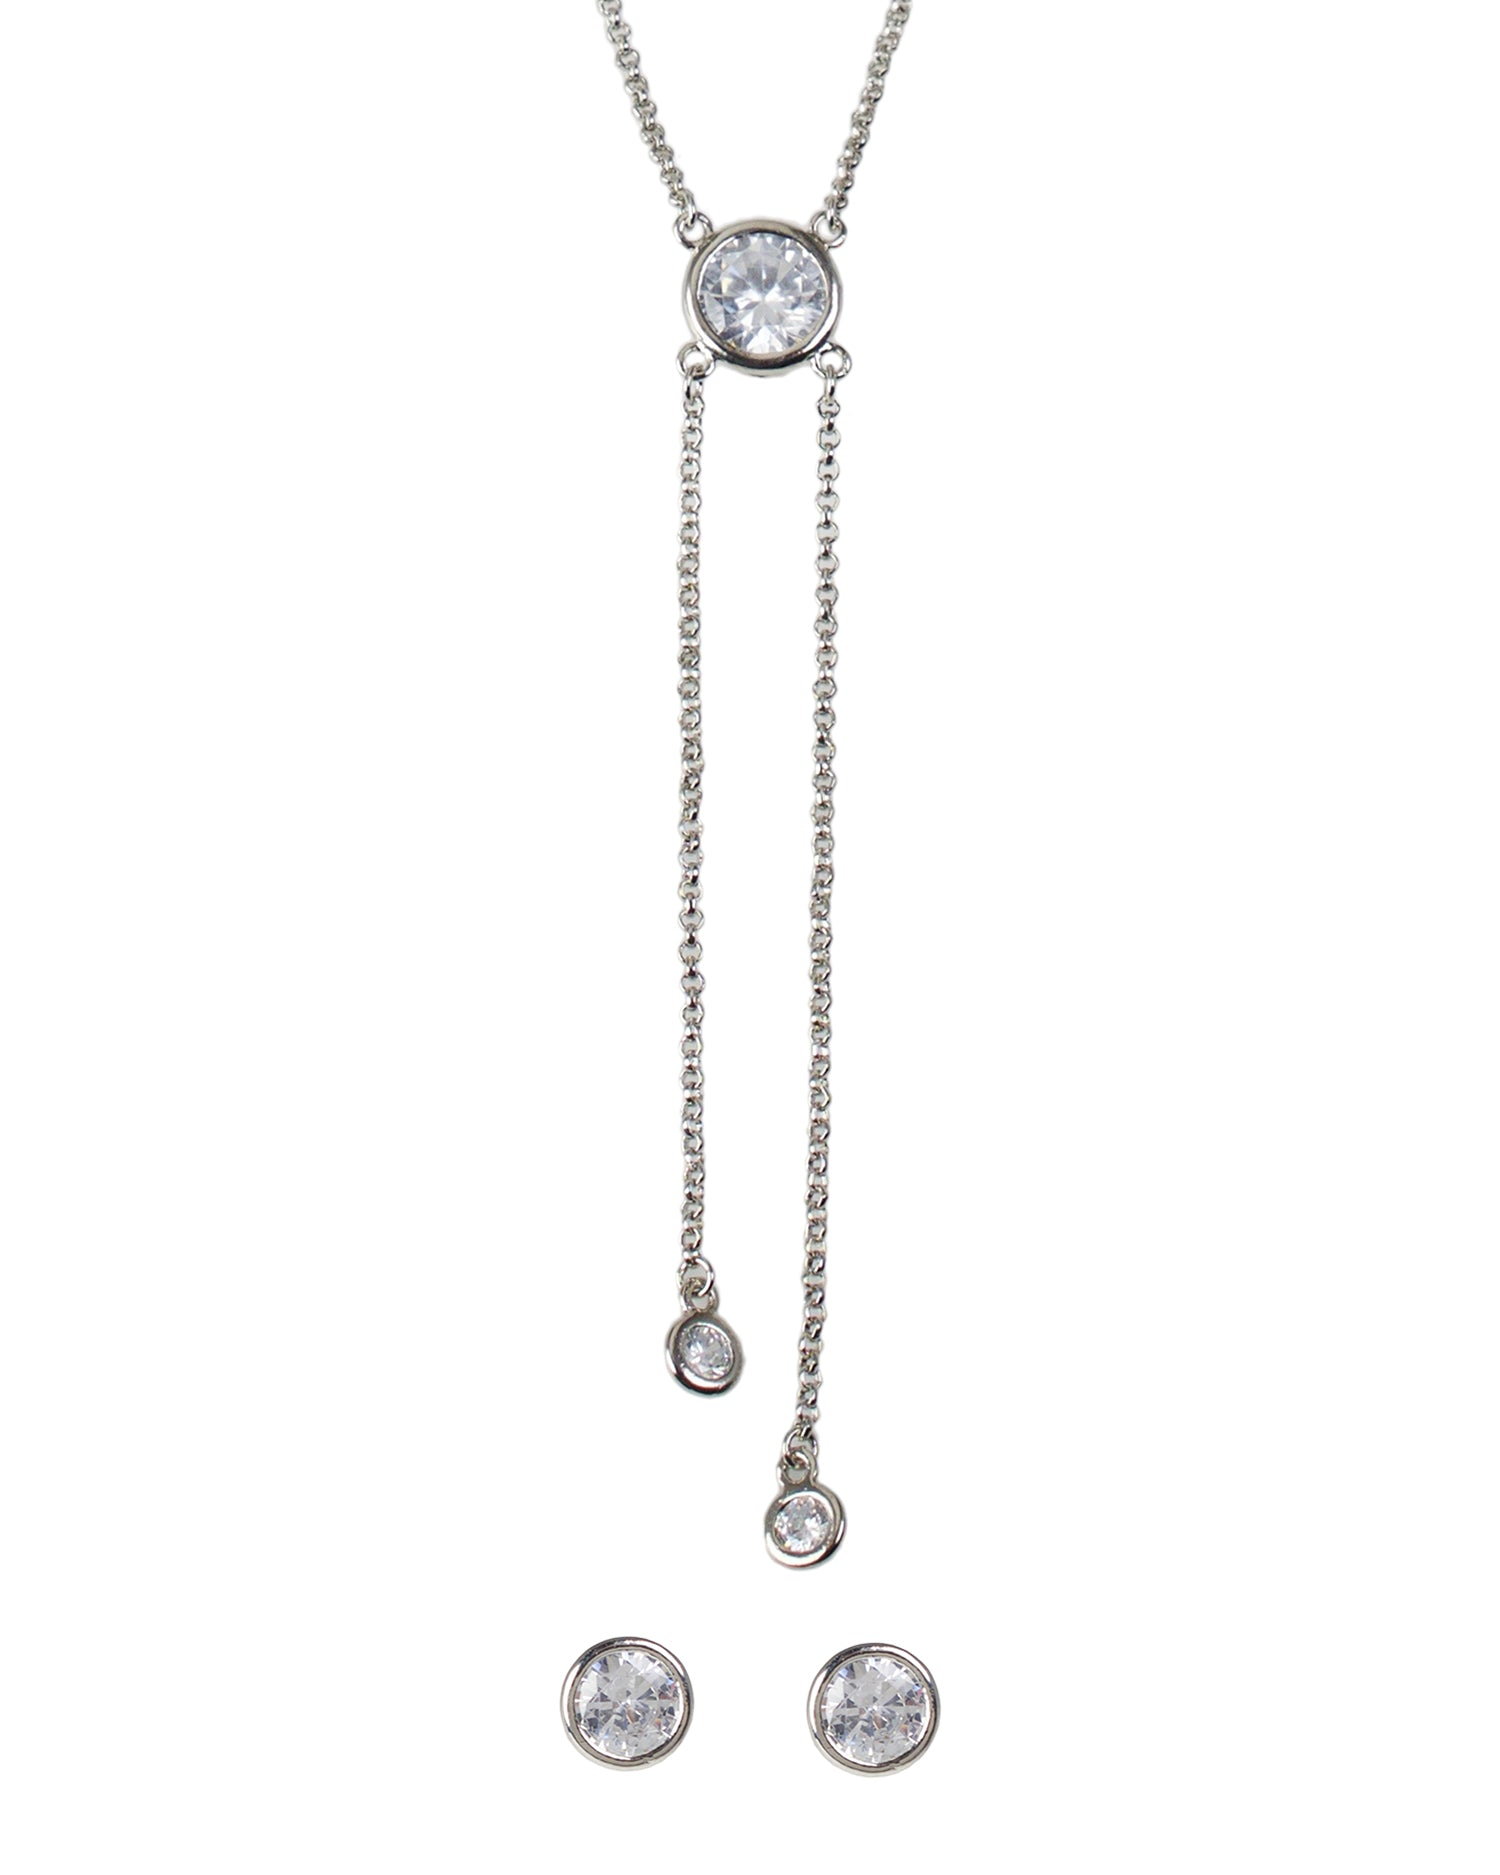 Bezel Round CZ Pendant with Post Earring Set